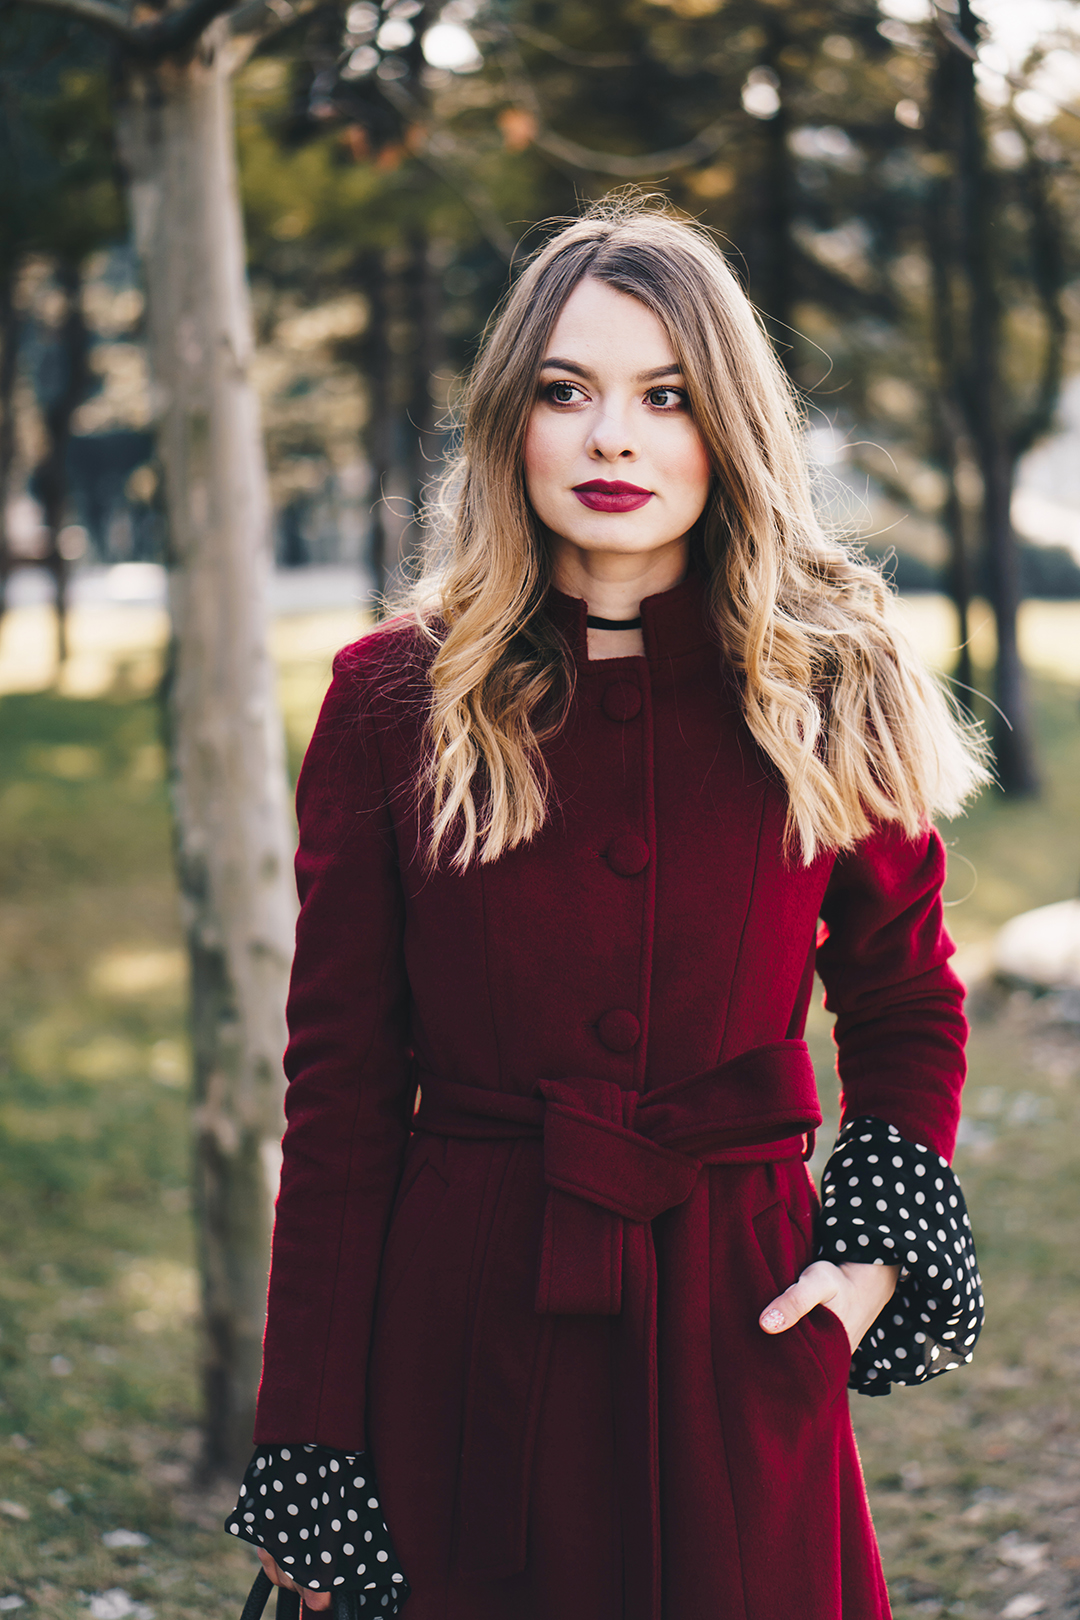 red-wool-coat-polka-dots-bell-sleeves-blouse-winter-outfit-2